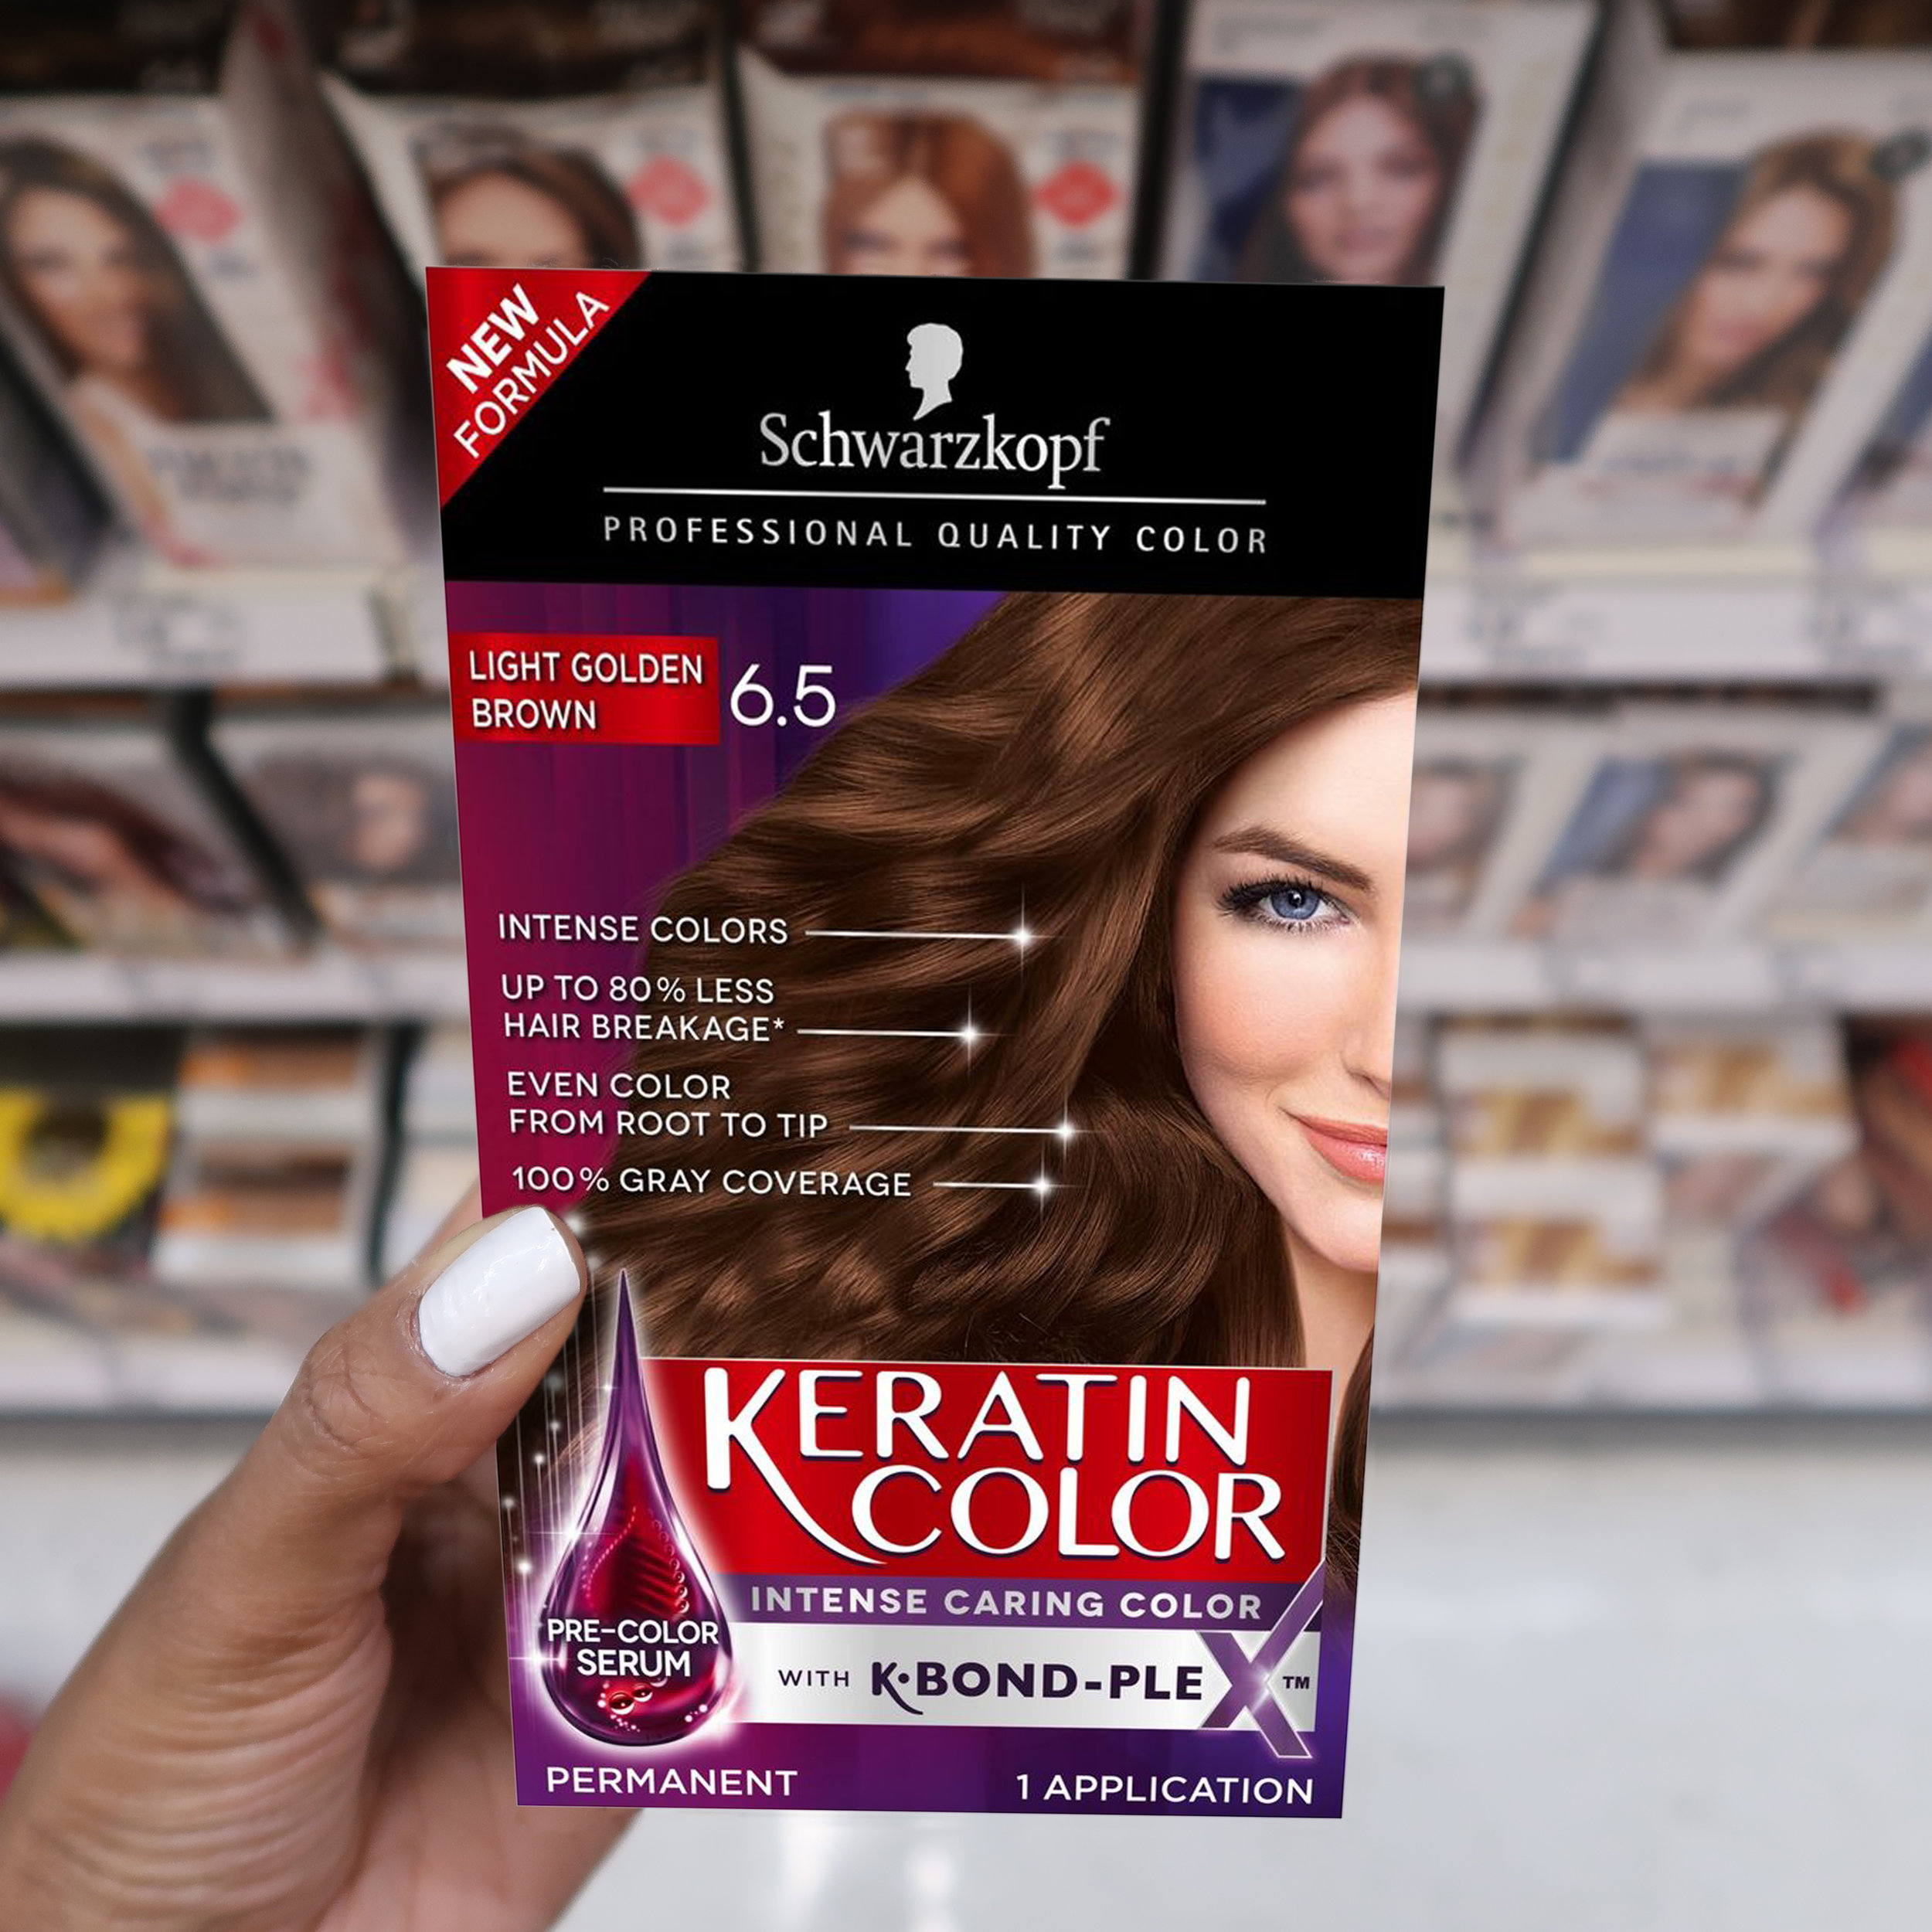 Schwarzkopf Color at Target.jpg